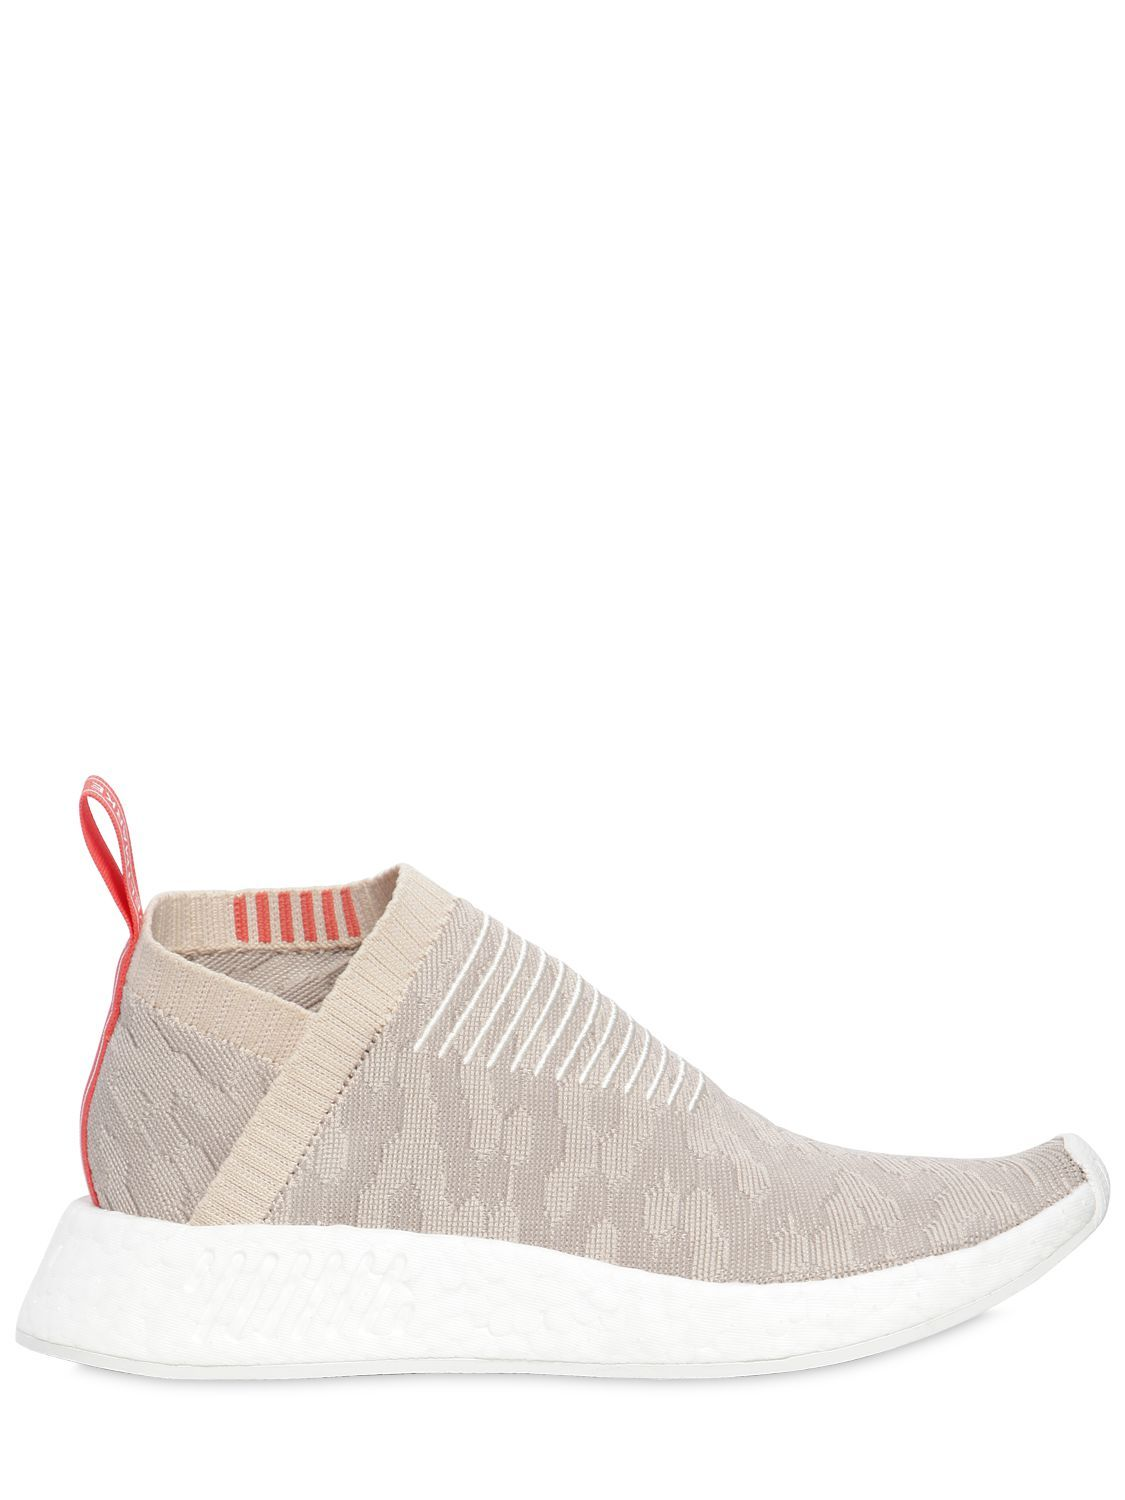 4e0cb82c1259d ADIDAS ORIGINALS NMD CS2 PRIMEKNIT SNEAKERS.  adidasoriginals  shoes ...